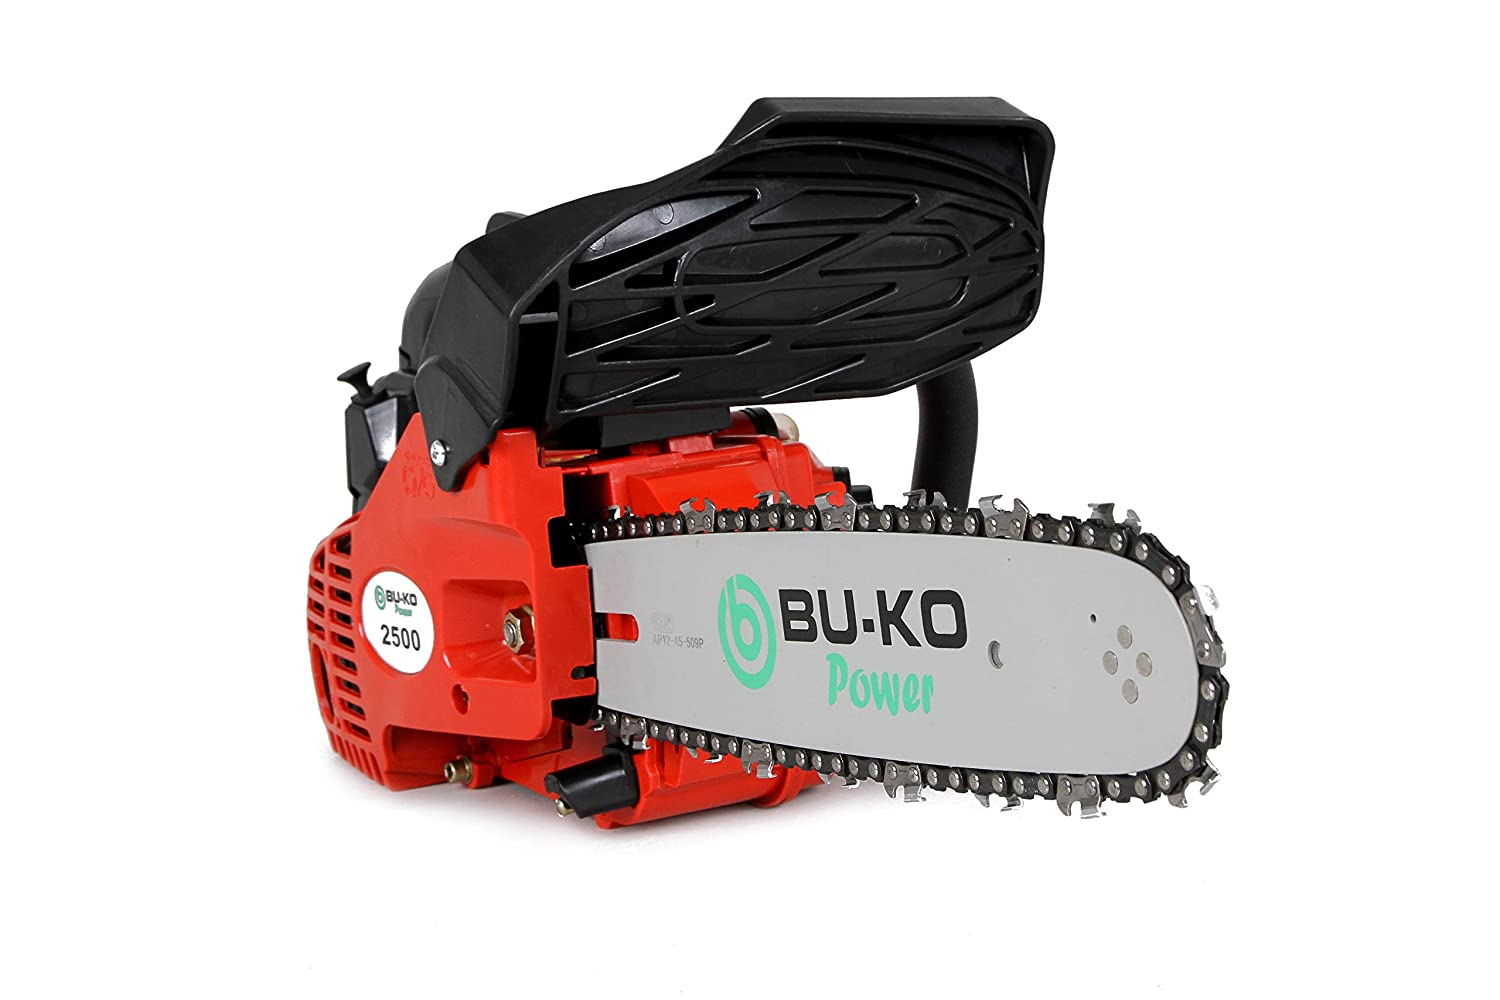 BU-KO 26 cc Lightweight Top Handled Petrol Chainsaw | 2 Chains and 10